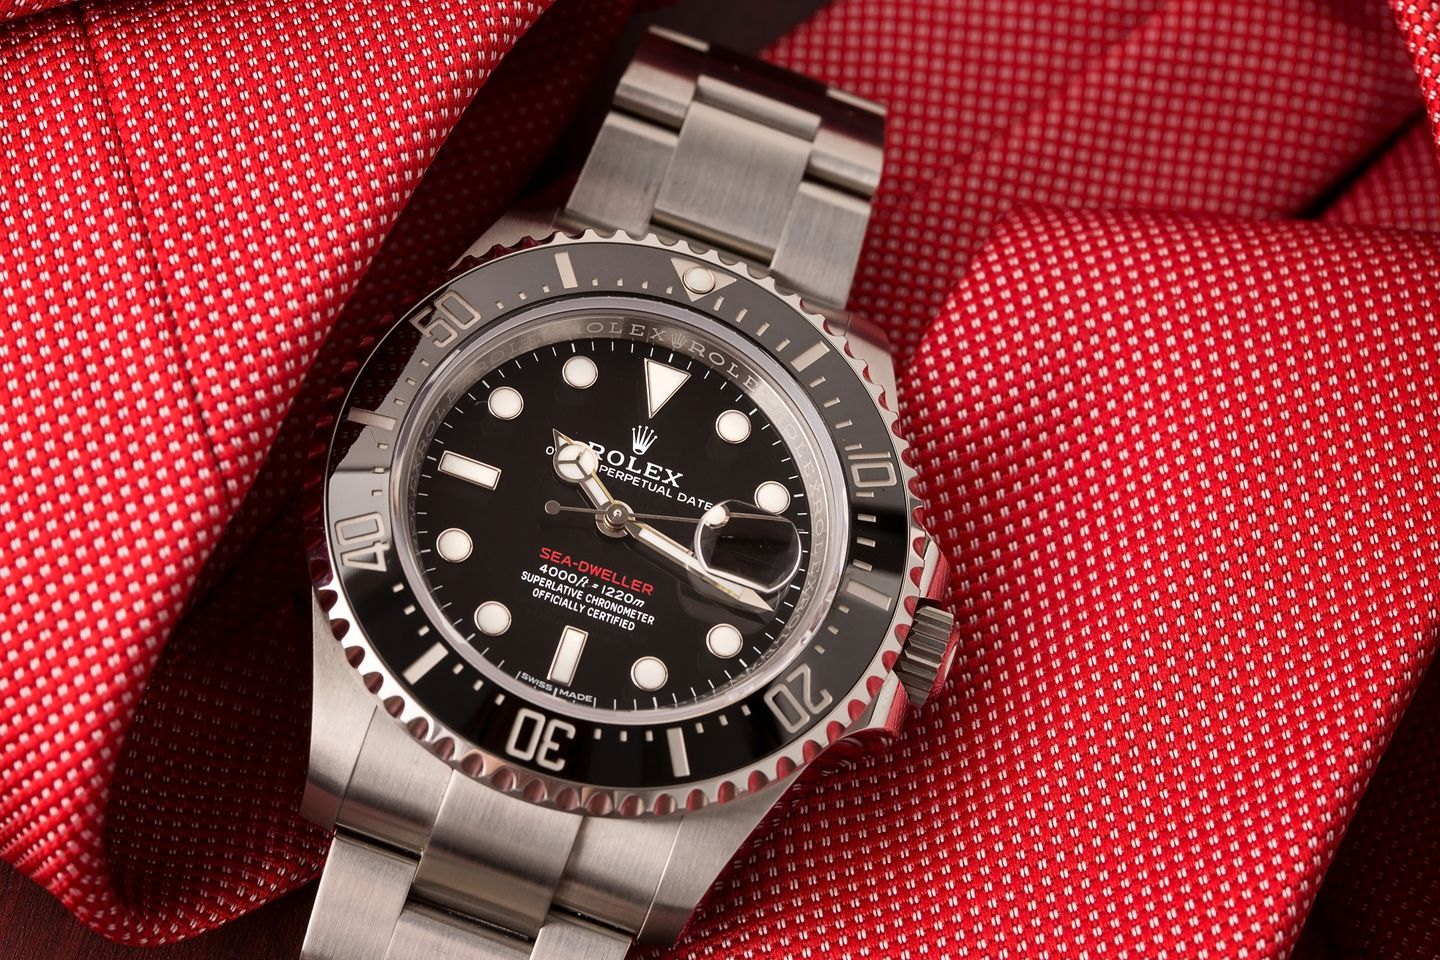 Most Durable Rolex Watches for Men Sea-Dweller 126600 red